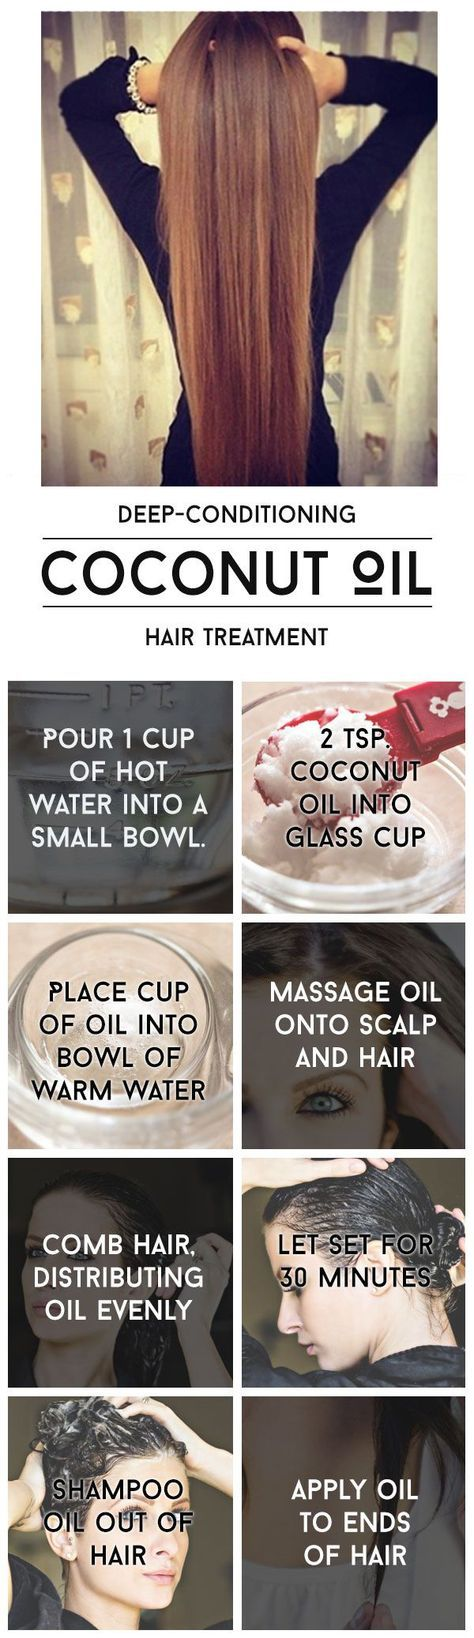 Do you know what's really in your products? Try this DIY hair recipe because your hair deserves it www.addisonrenee.com